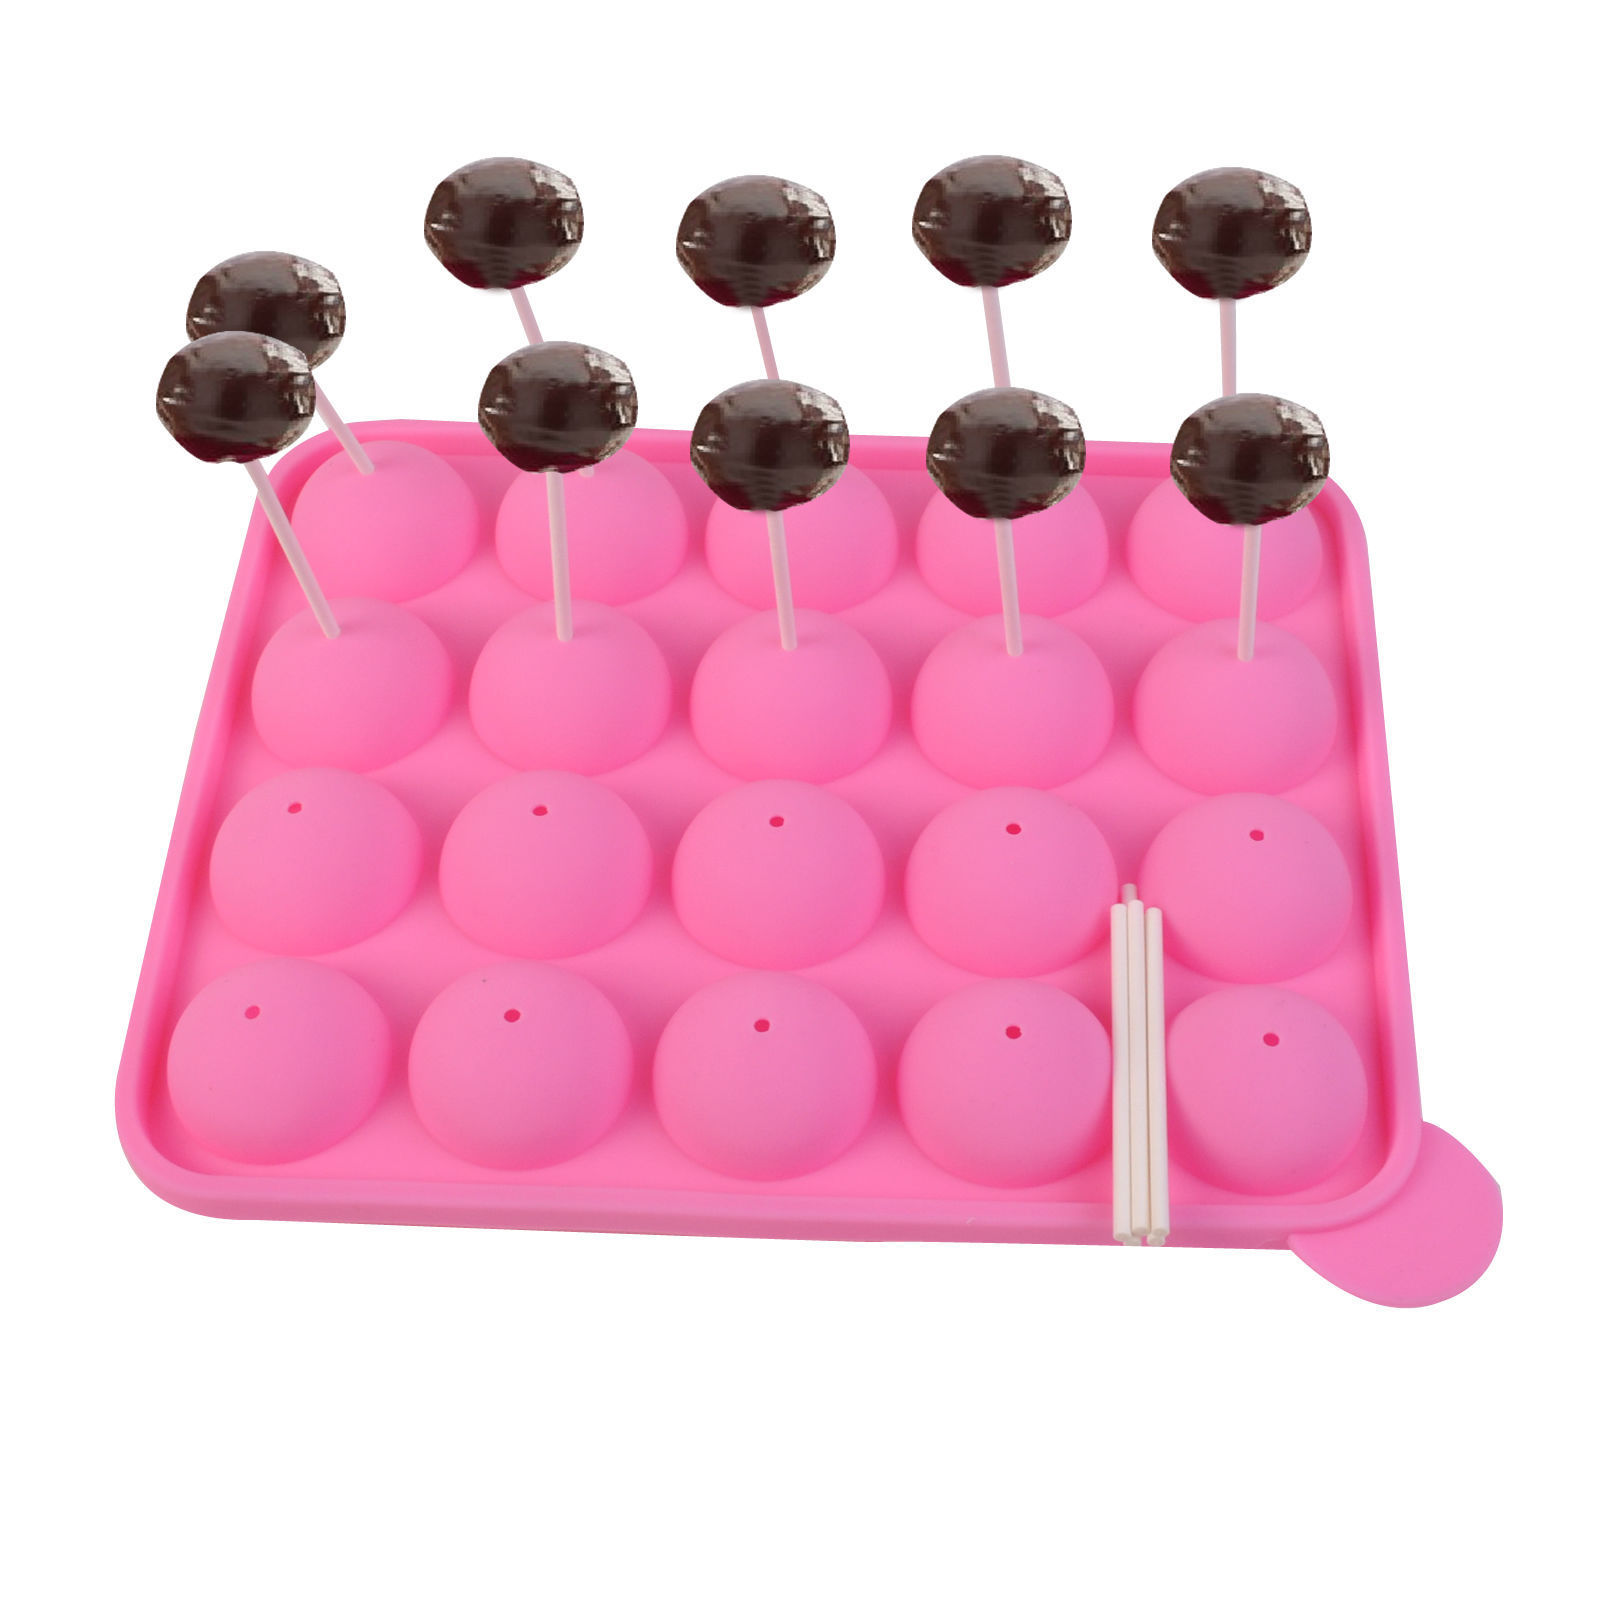 20 Cup Tasty Cake PopSilicone Mold Tray Easy Instant Baking Flex Pan KC33456